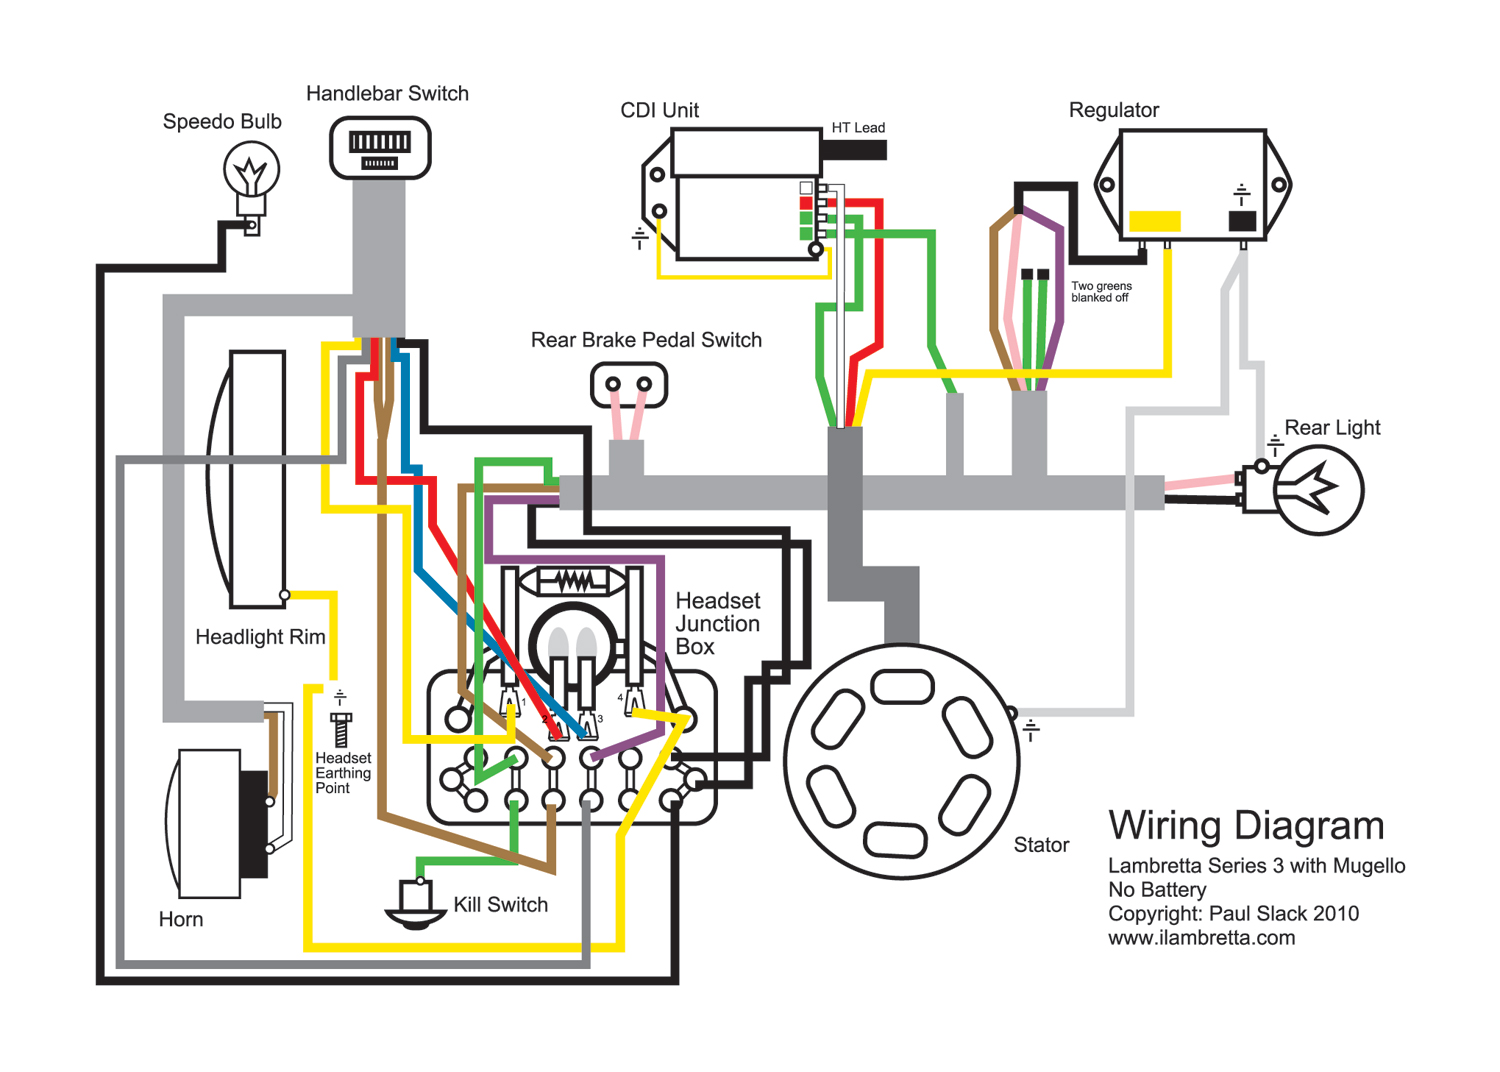 Li150 Wiring lambretta restoration november 2011 lambretta series 2 wiring diagram at crackthecode.co